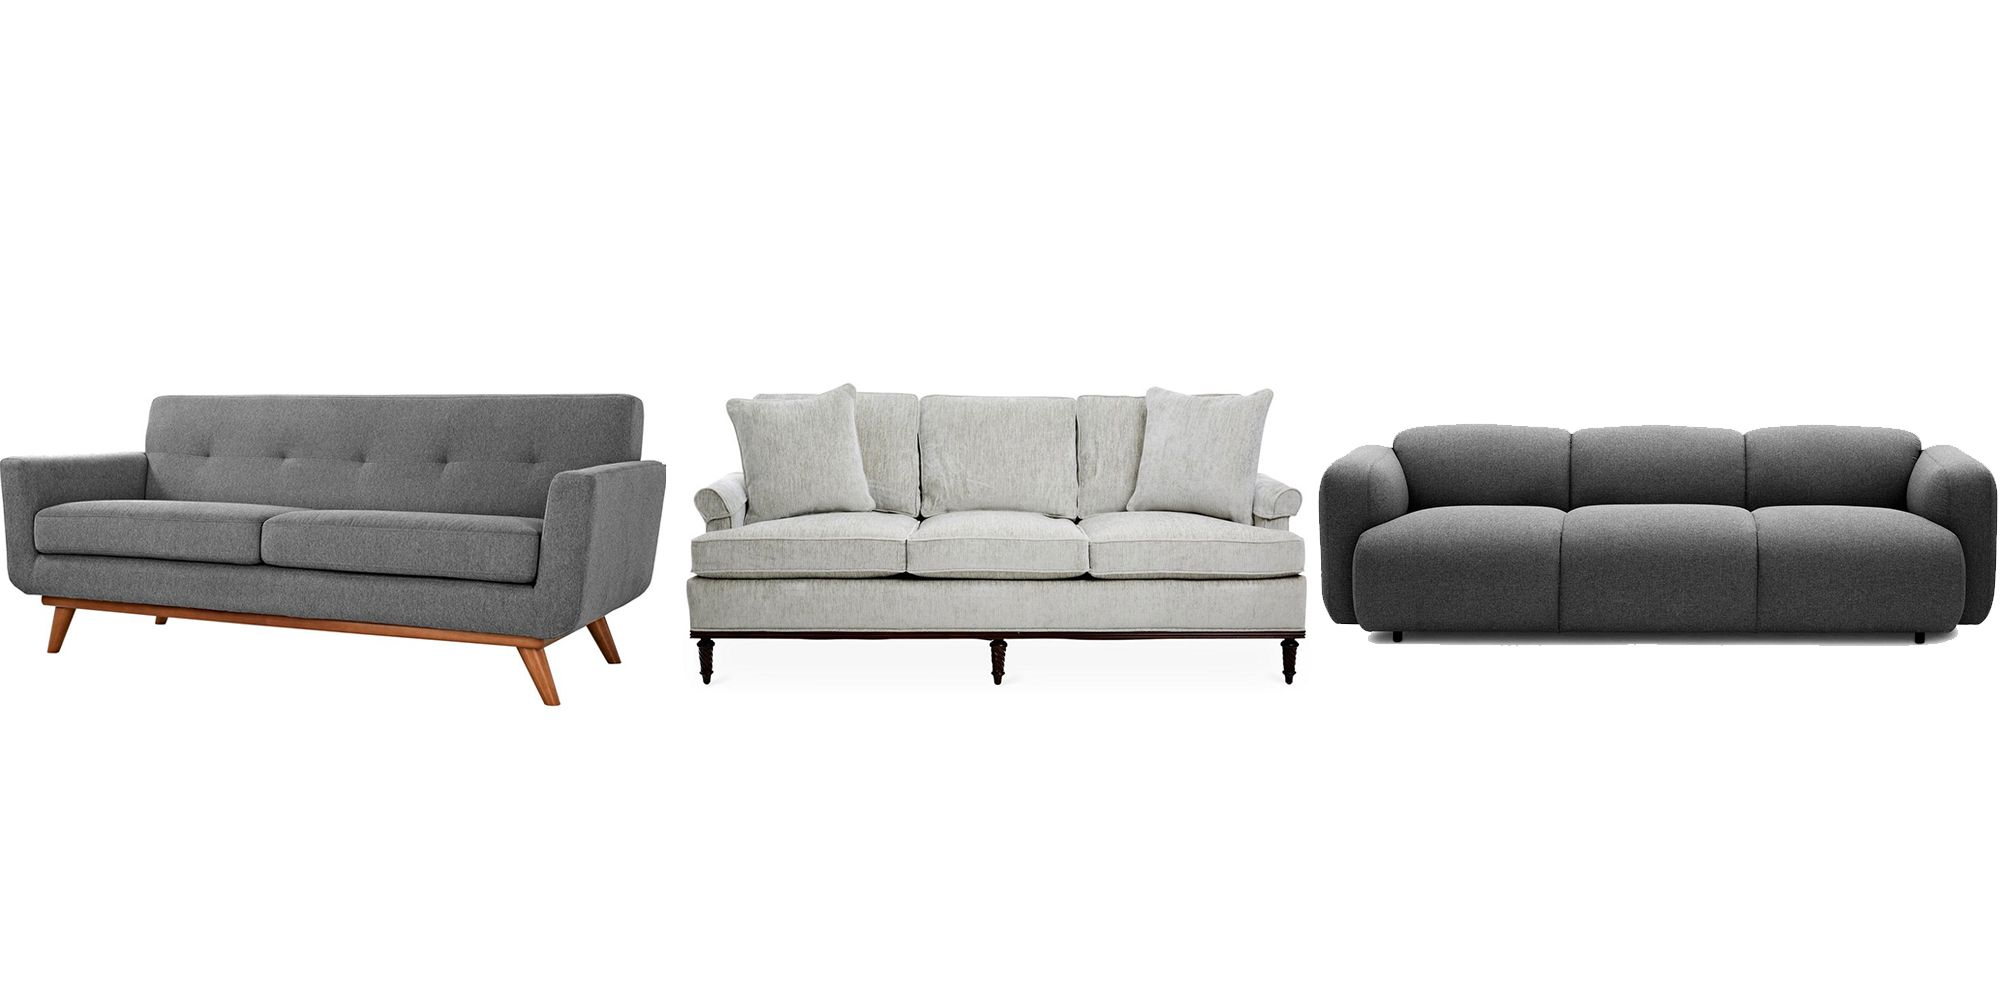 25 Grey Sofa Ideas For Living Room